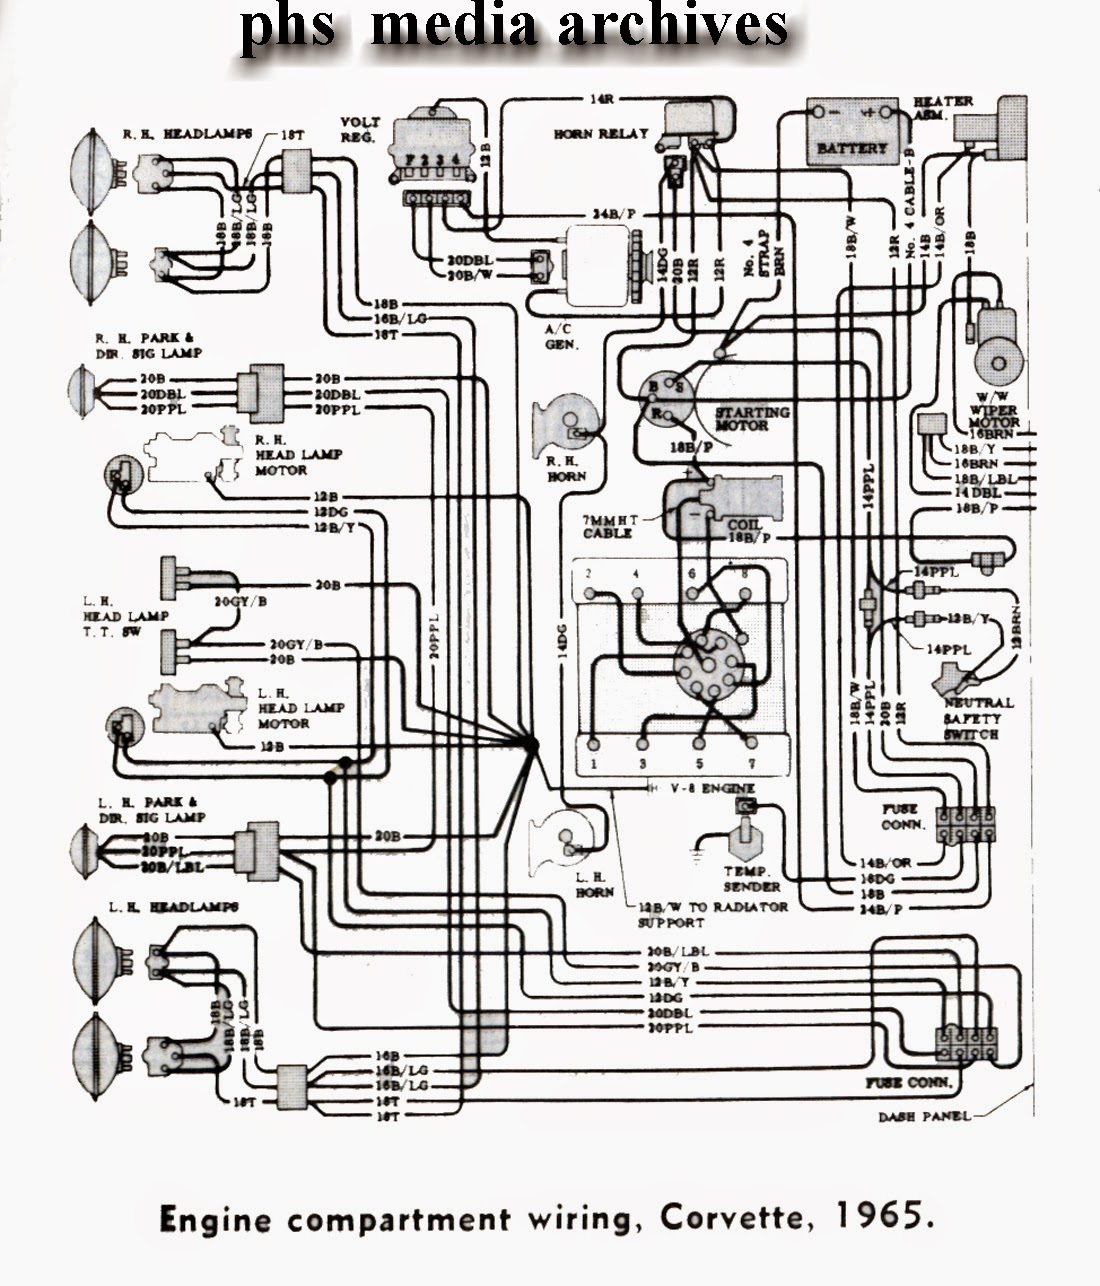 1979 Corvette Wiring Harness Diagram | Wiring Liry on 1973 camaro radio, 1973 camaro rear suspension, 1973 camaro dash wiring, 1973 camaro exploded view, 1973 camaro exhaust, 1973 camaro rs, 1973 camaro pro street, 1973 camaro brake line diagram, 1973 camaro color chart, 1973 camaro ignition diagram, 1973 camaro accessories, 1973 camaro specifications, 1973 camaro carburetor, 1973 camaro convertible, 1973 camaro pro touring, 1973 camaro dash support diagram, 1973 camaro shop manual, 1973 camaro fuse box diagram, 1973 camaro air cleaner, 1973 camaro motor,